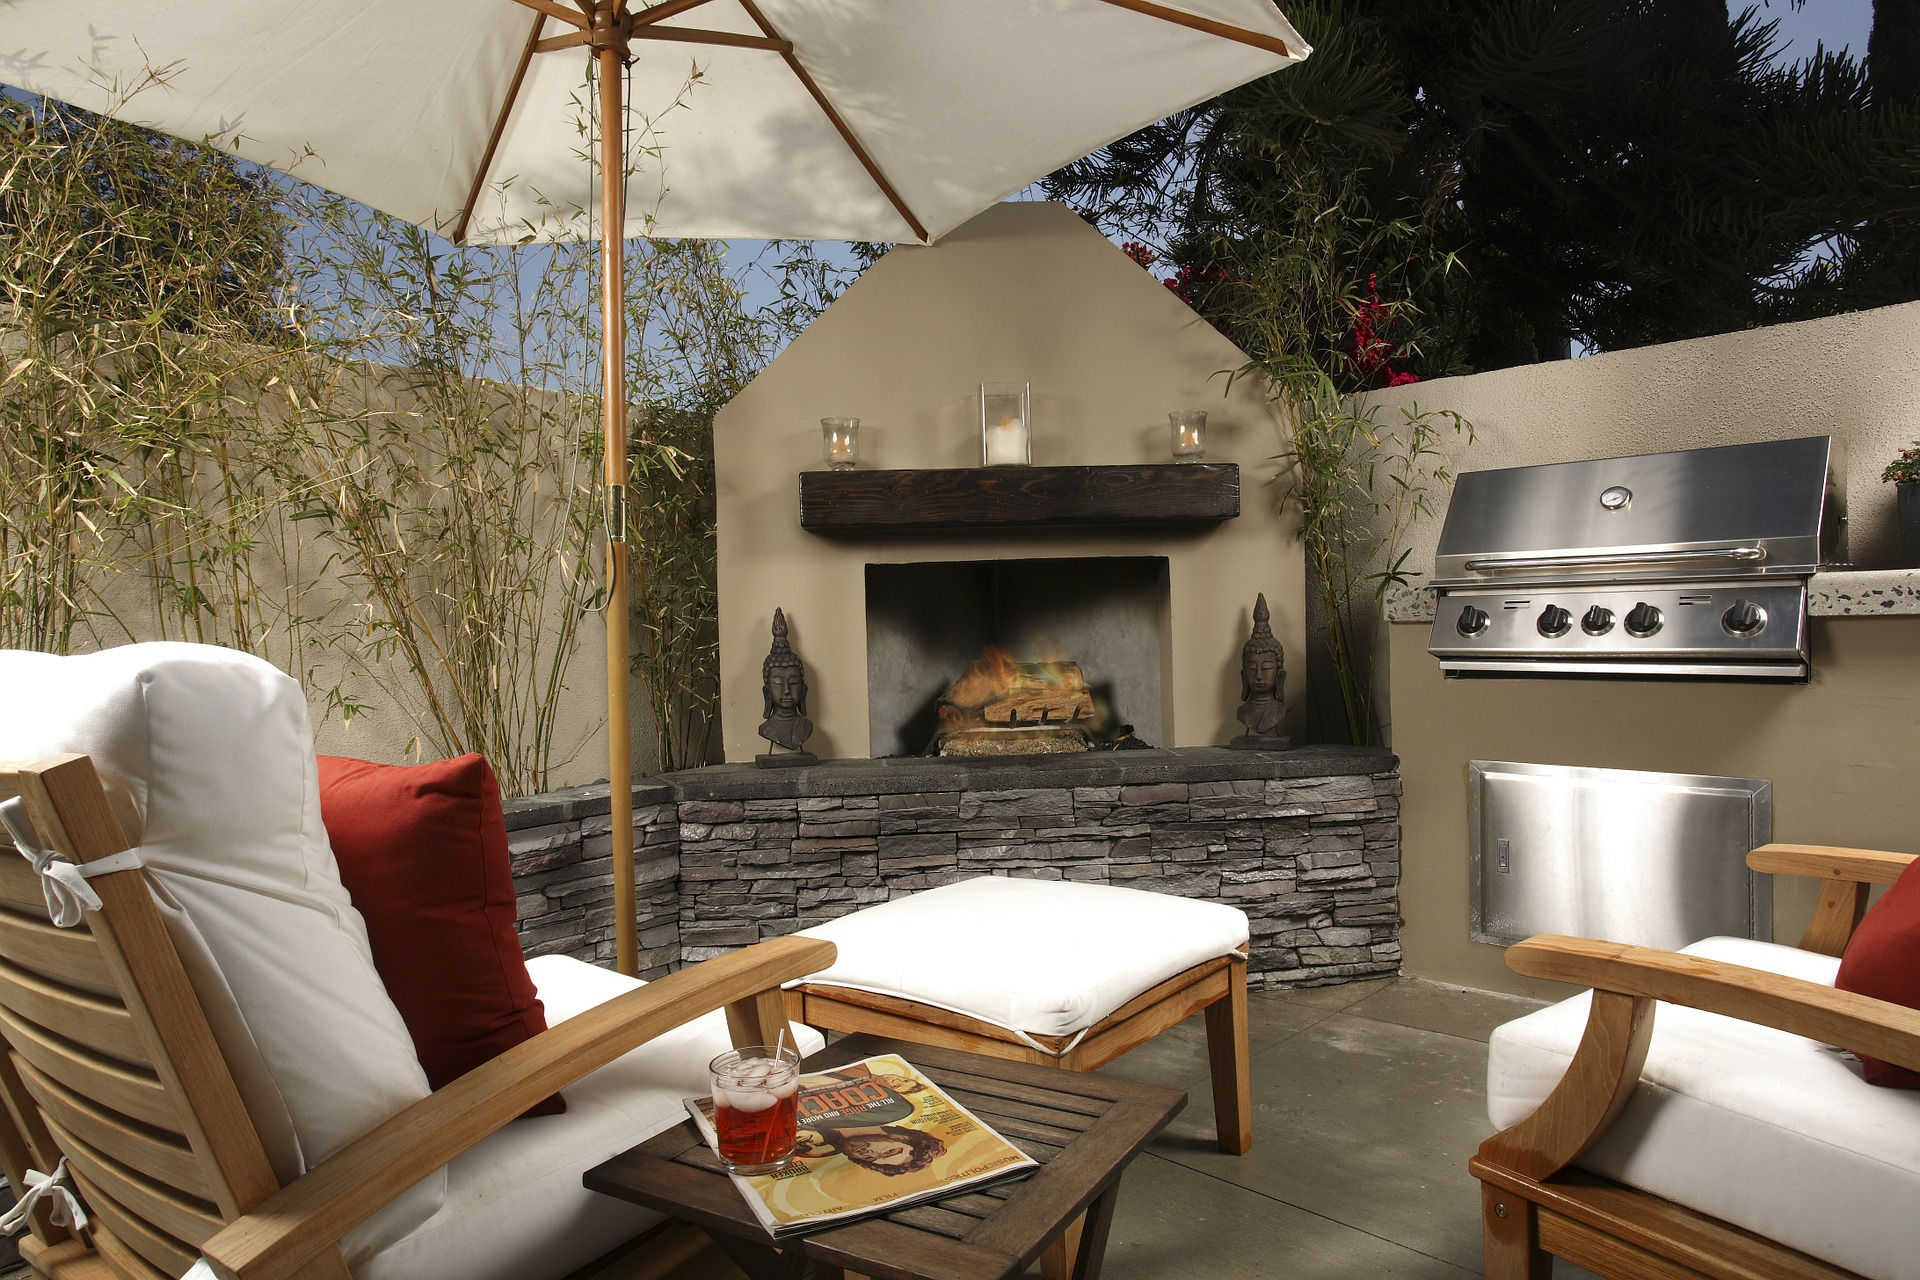 outdoor living room with barbecue, furniture, and fireplace